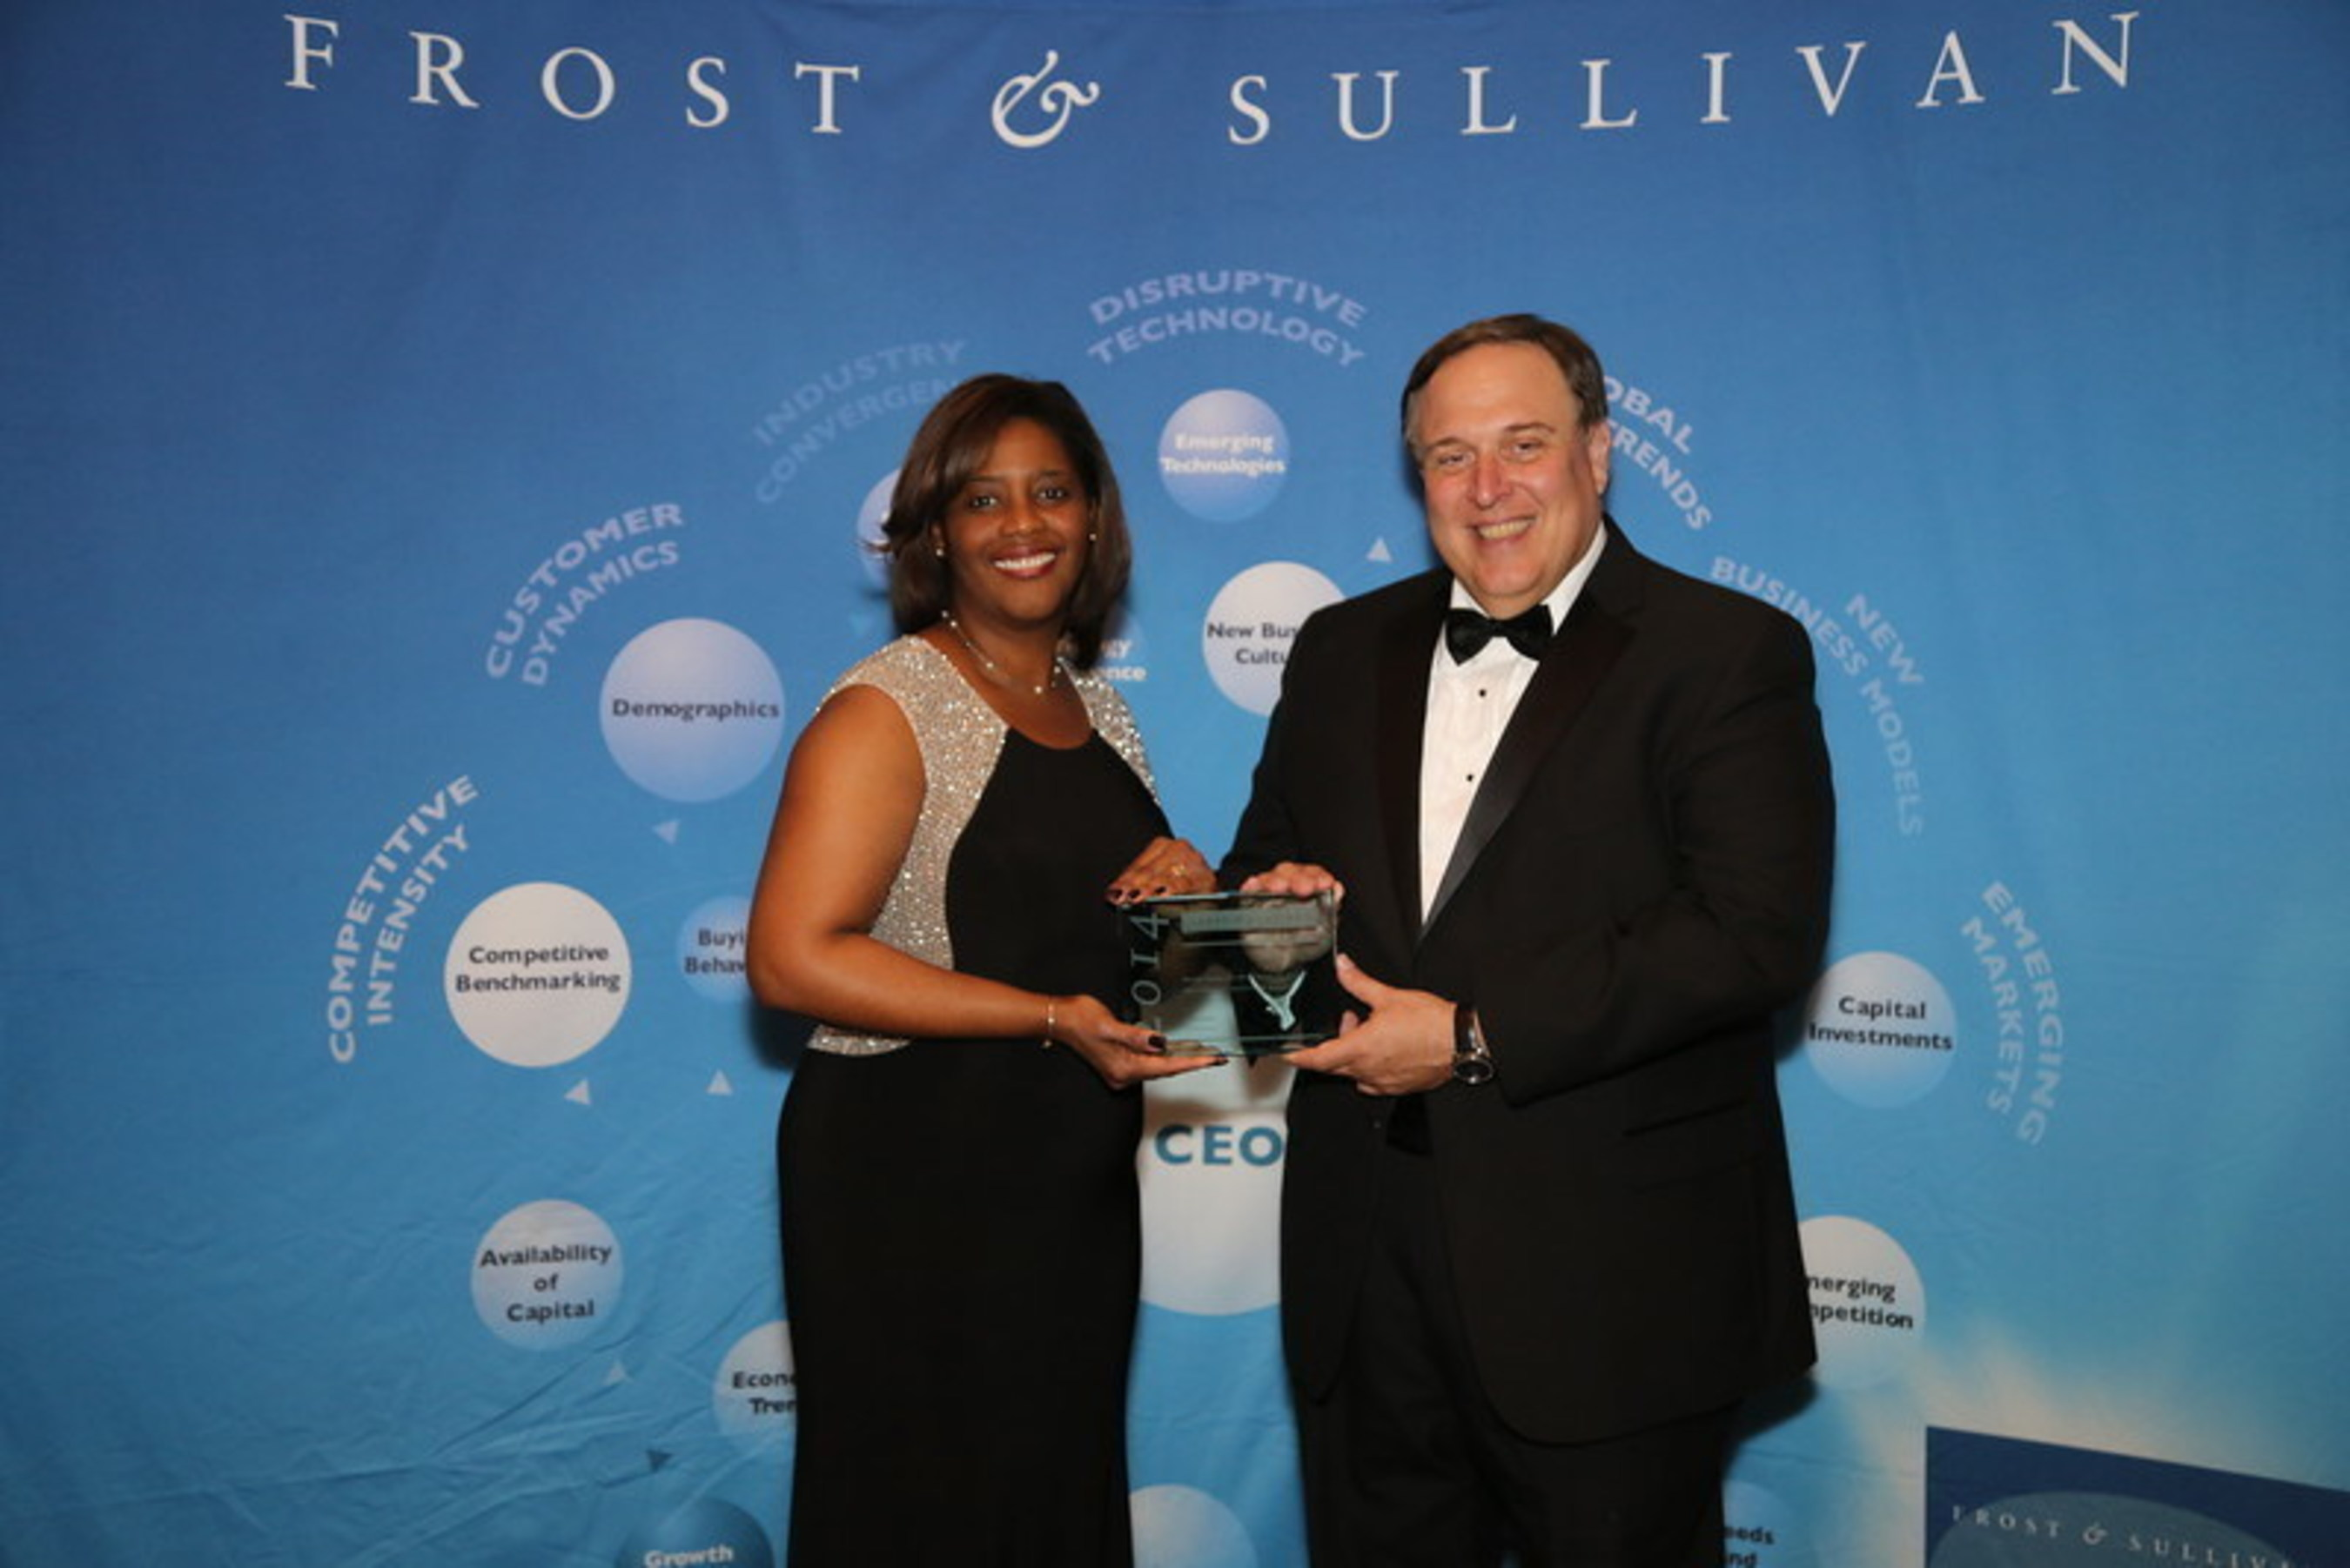 Chemetall, a business unit of Albemarle Corporation, receives prestigious Frost & Sullivan 2014 North American Metalworking Fluids New Product Innovation Award. From left to right: (Julia Murray, Vice President Global Marketing and Communications for Chemetall and Art Robbins, President - Americas and Partner, Frost & Sullivan)